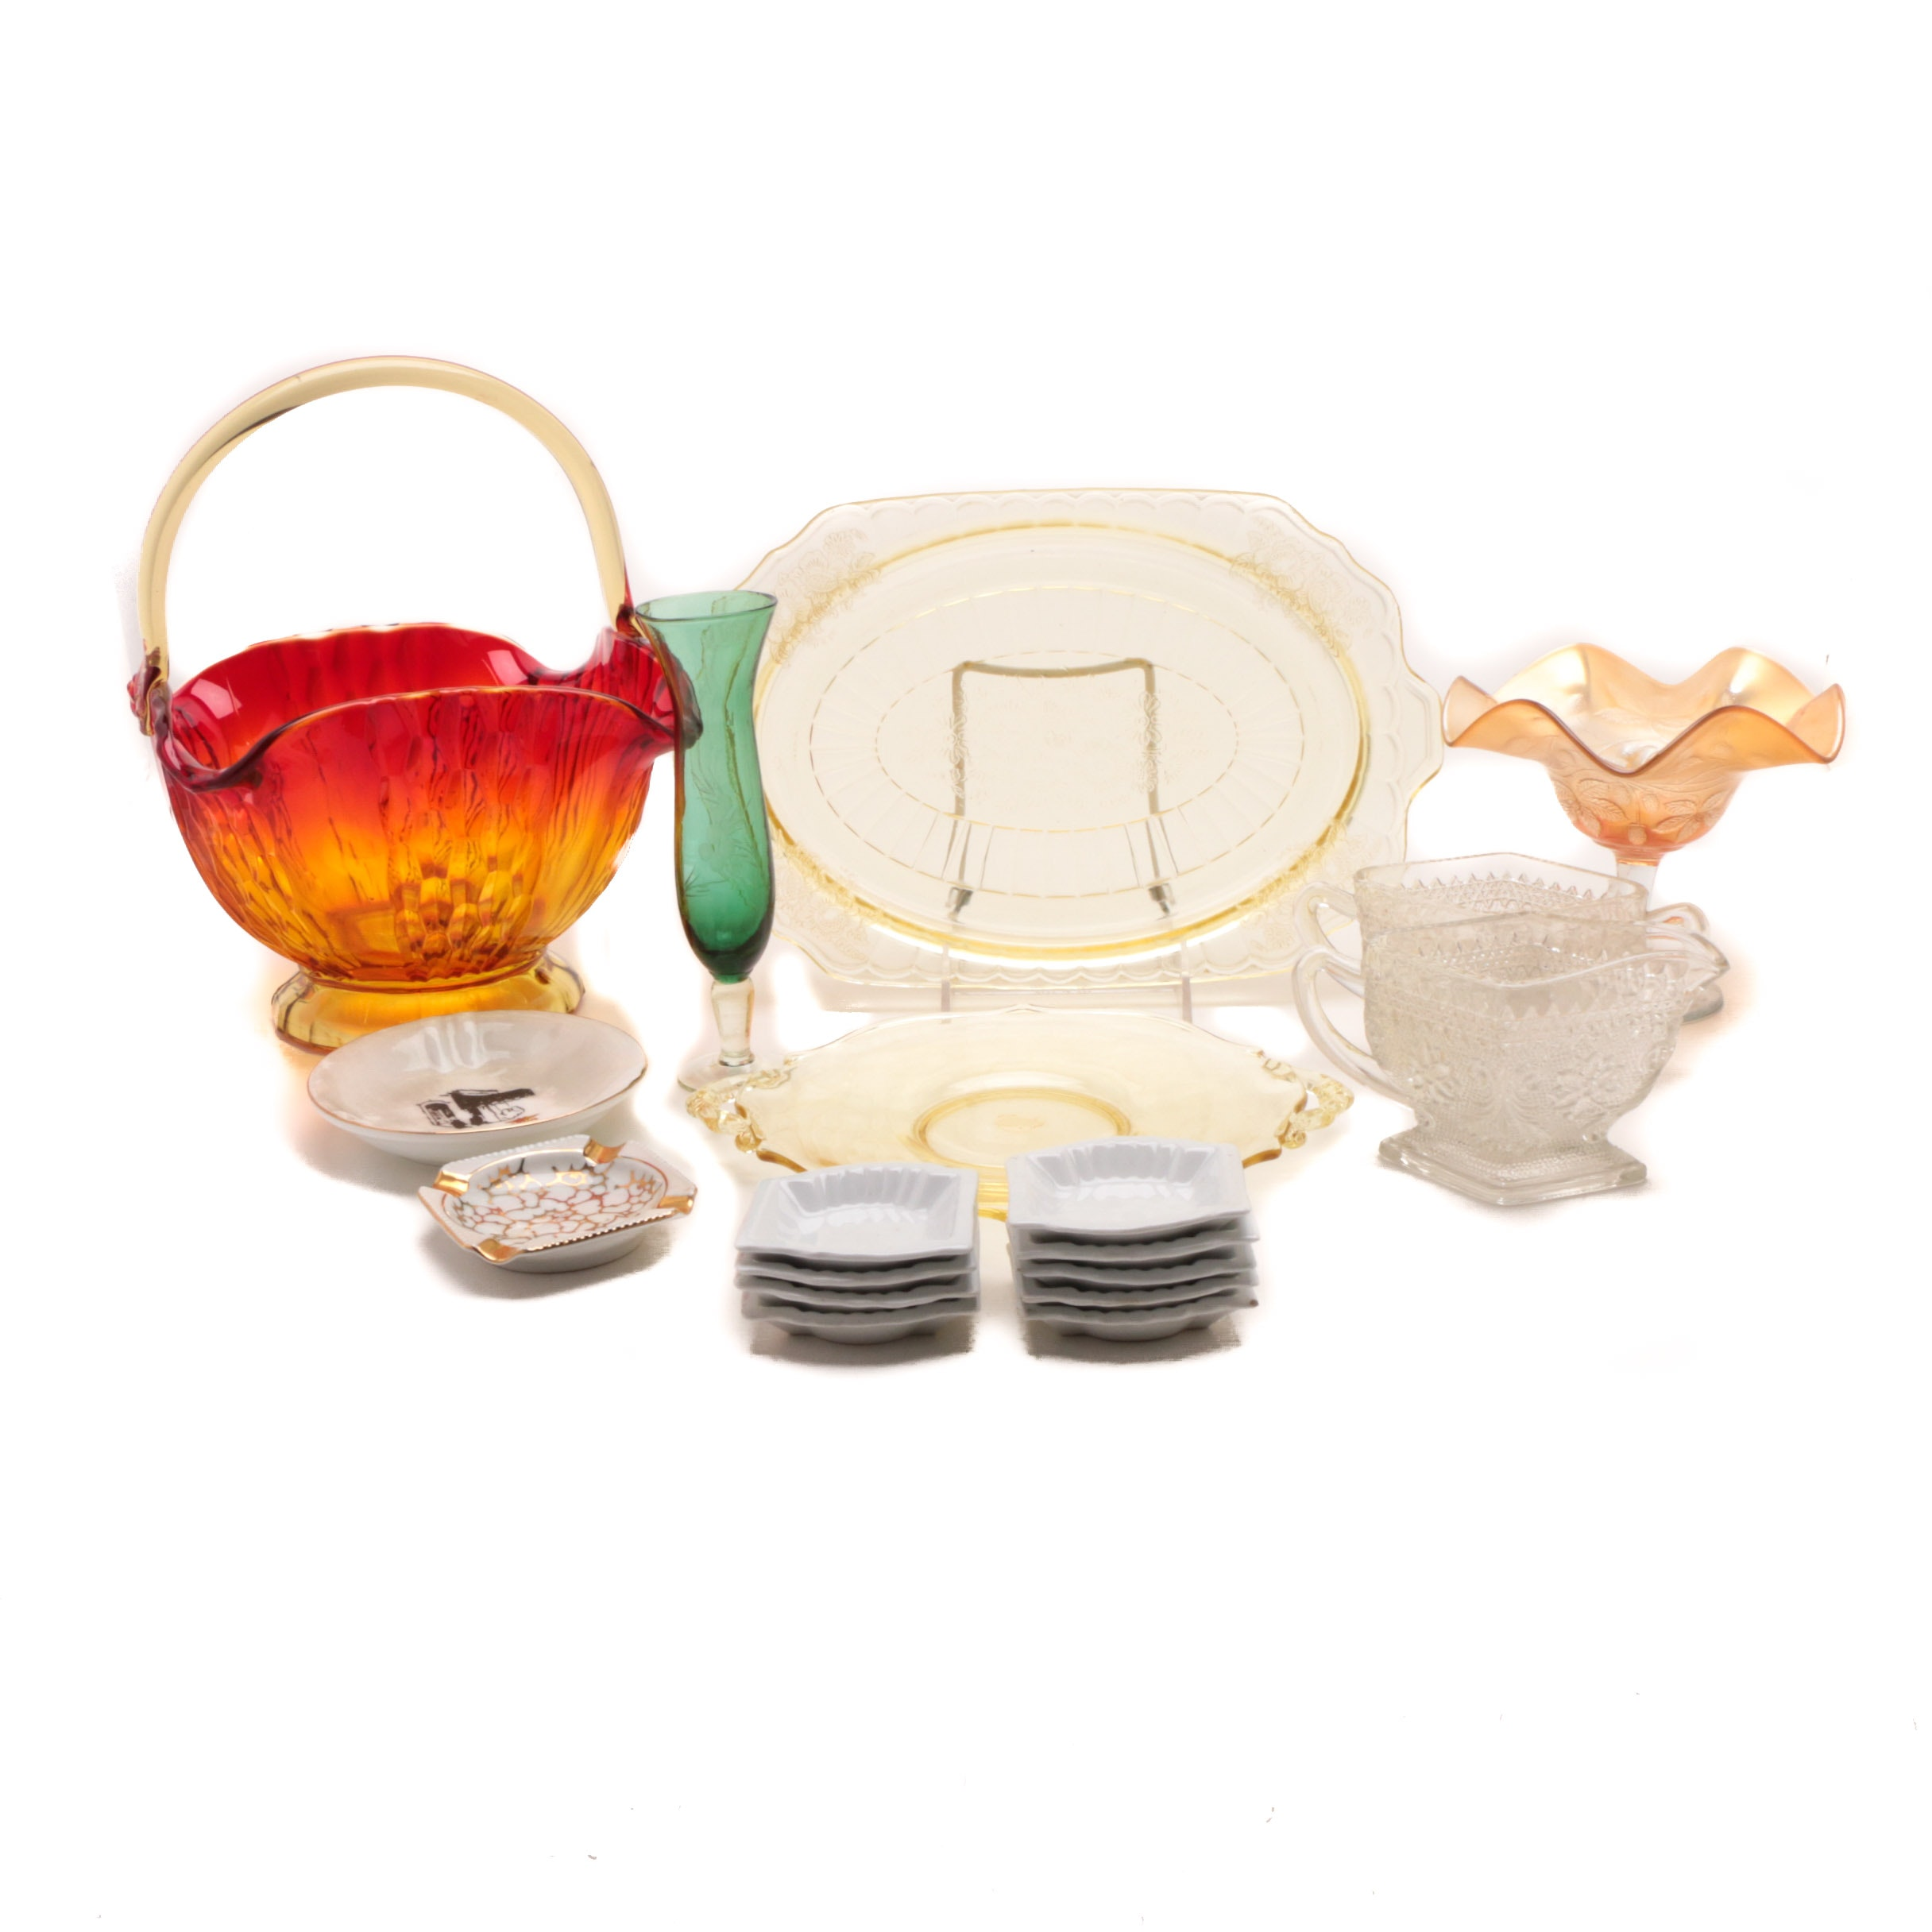 Assortment of Depression Glass, Amberina and Tableware